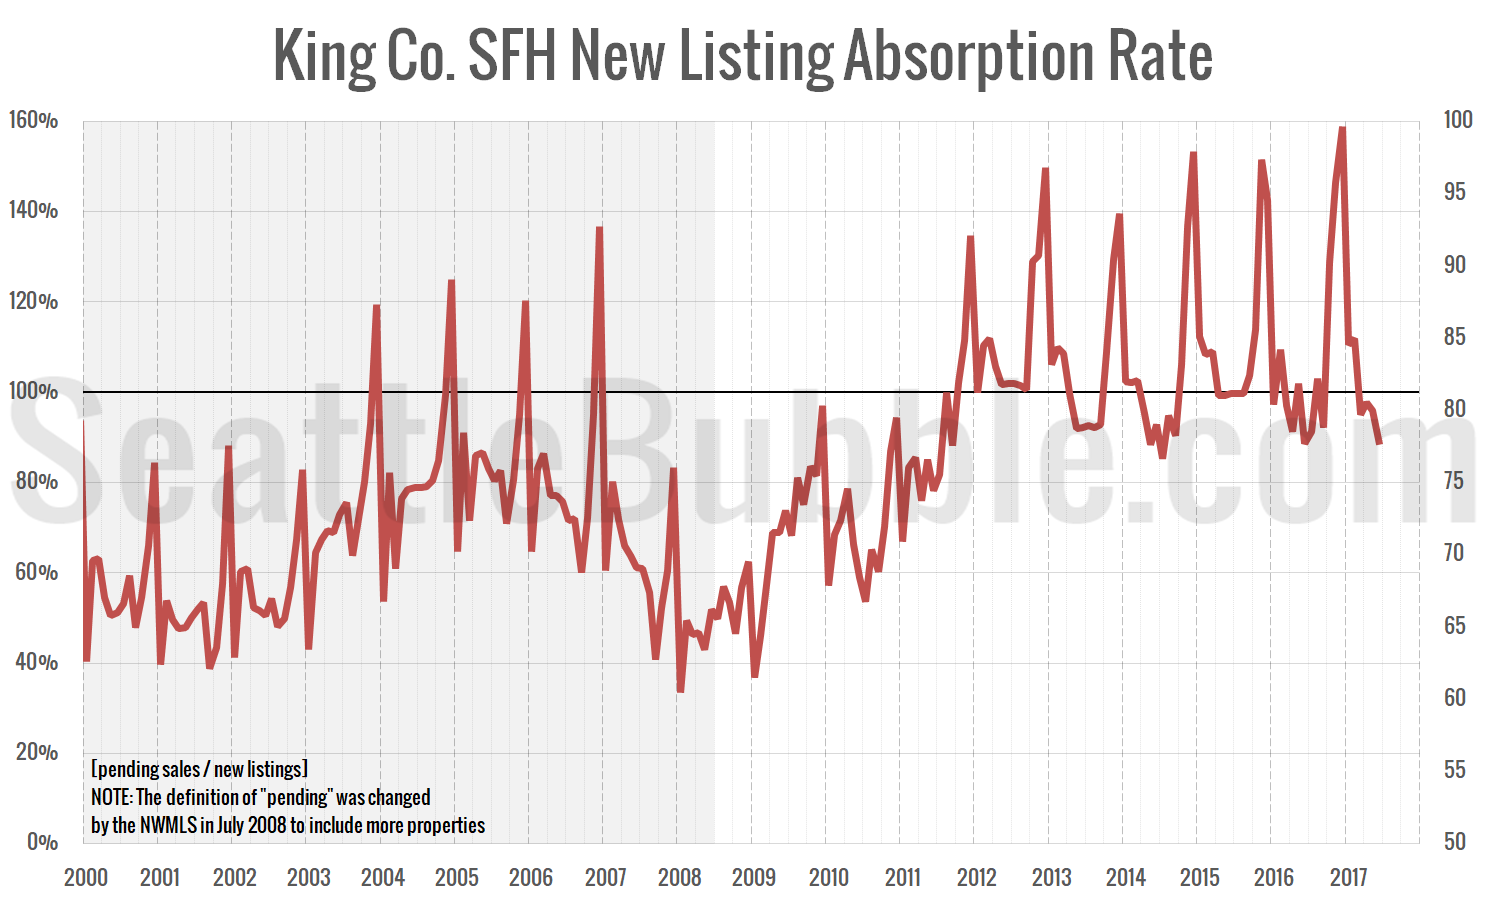 King Co. SFH New Listing Absorption Rate